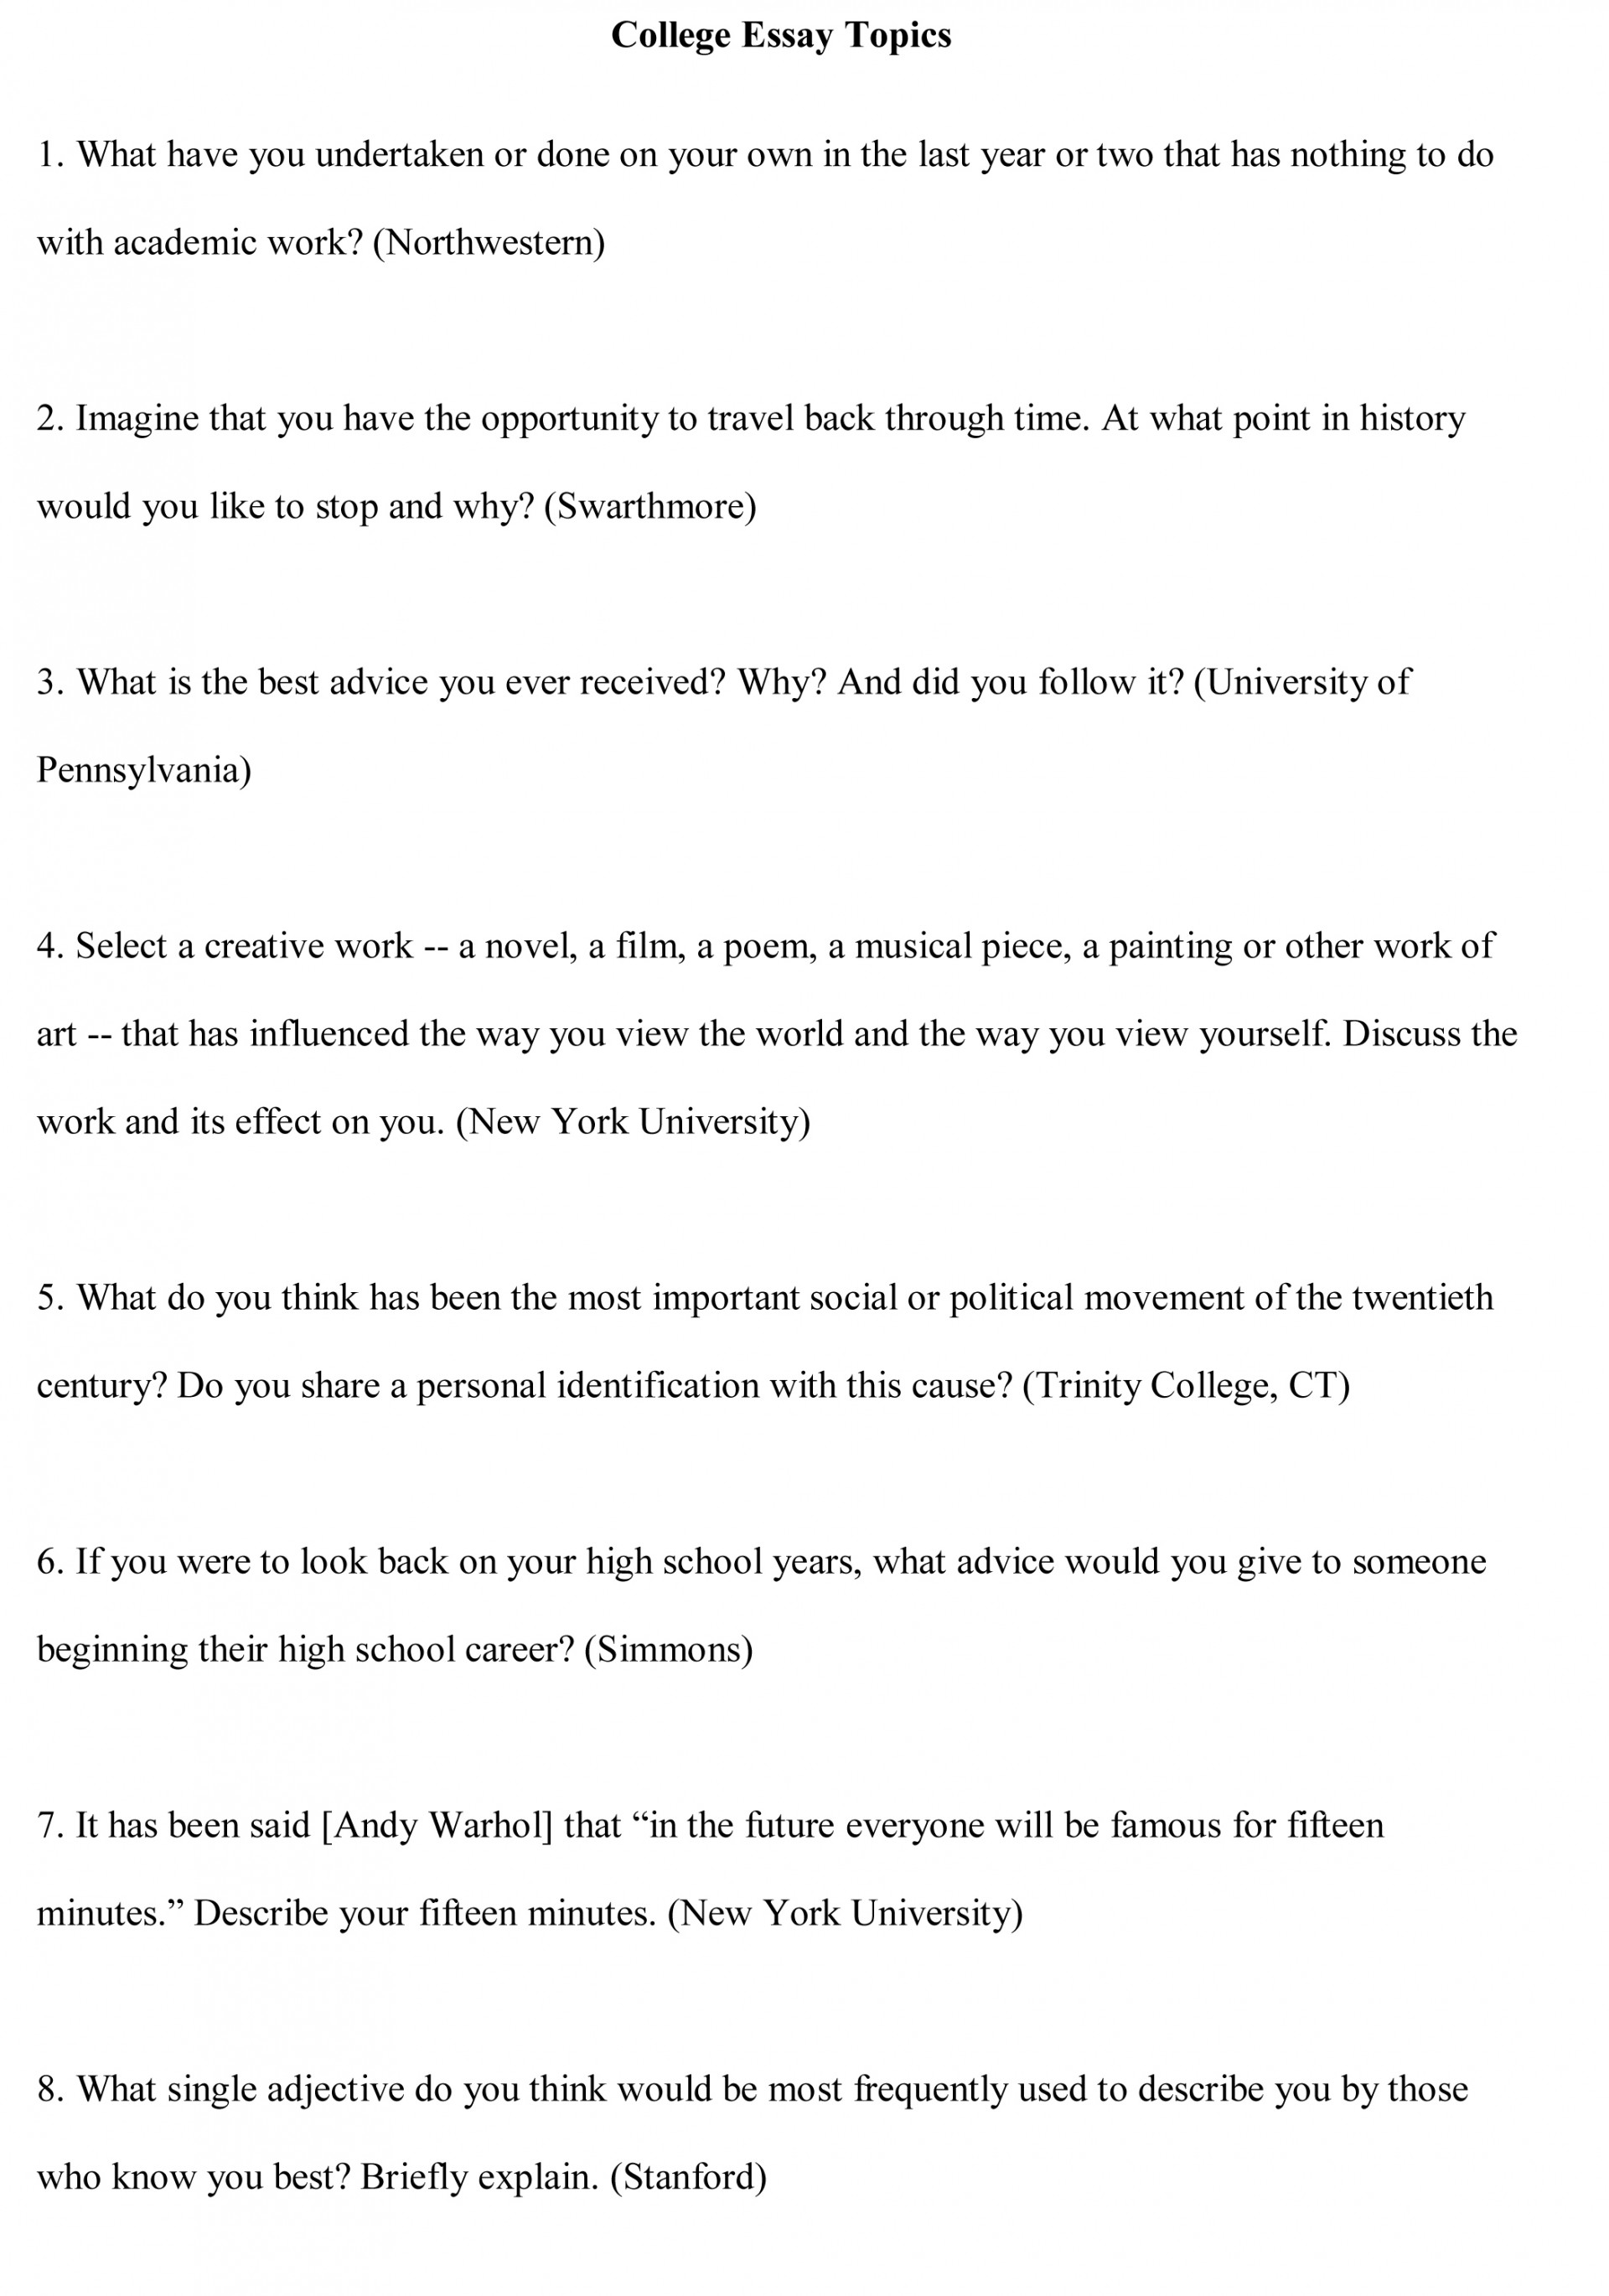 014 College Essay Topics Free Sample1 Informative Introductions Frightening Introduction Examples Paragraph 1920